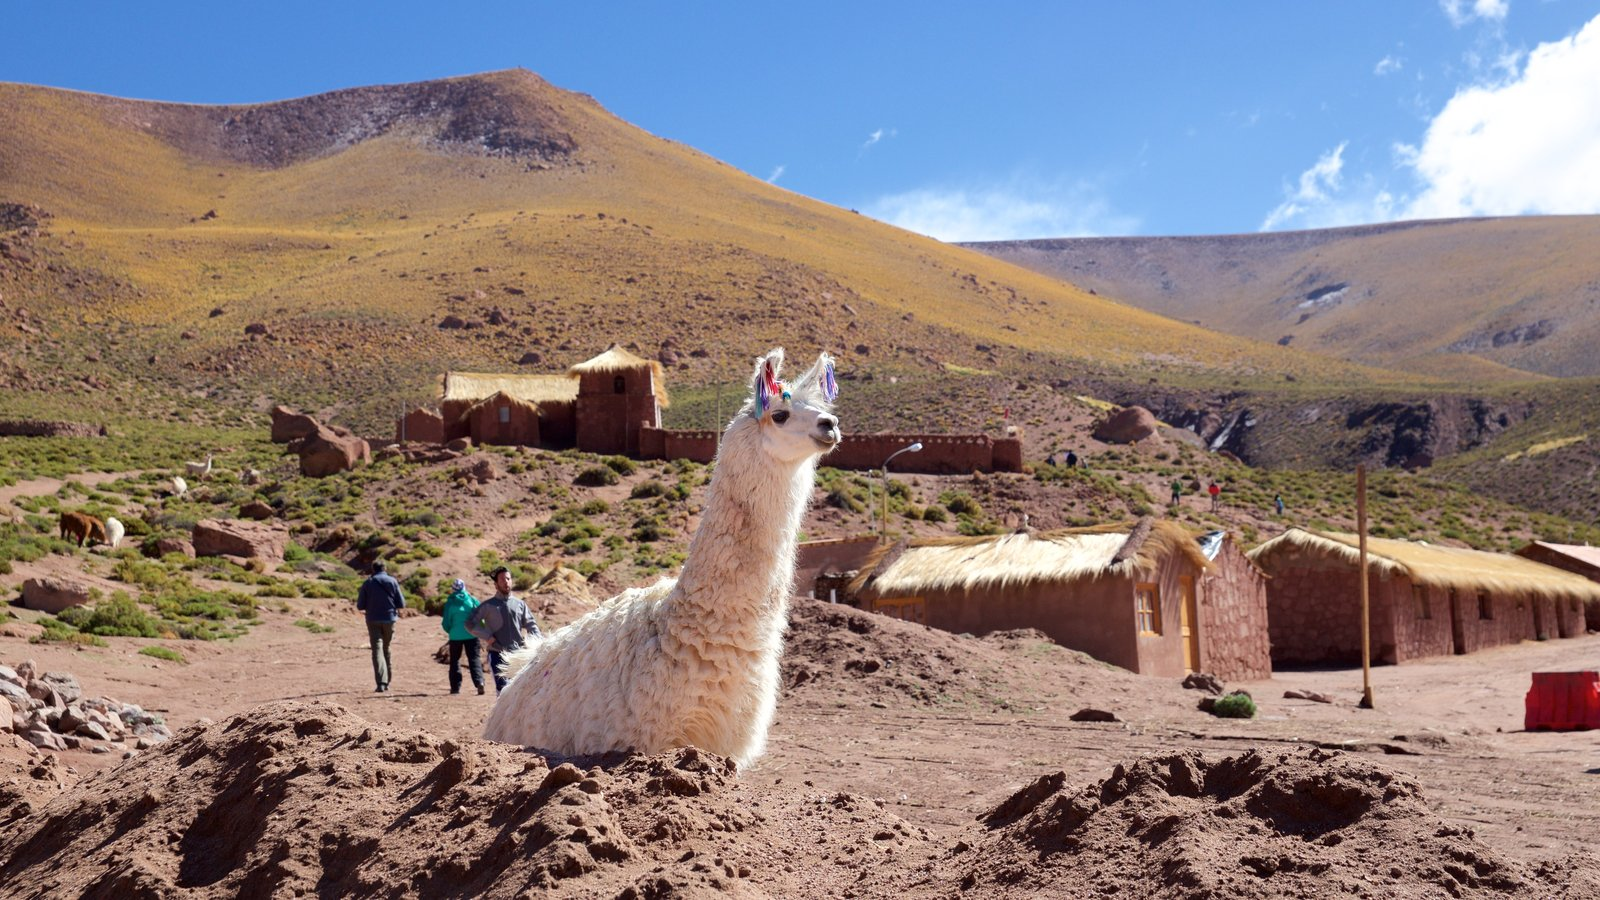 Machuca featuring landscape views, tranquil scenes and cuddly or friendly animals